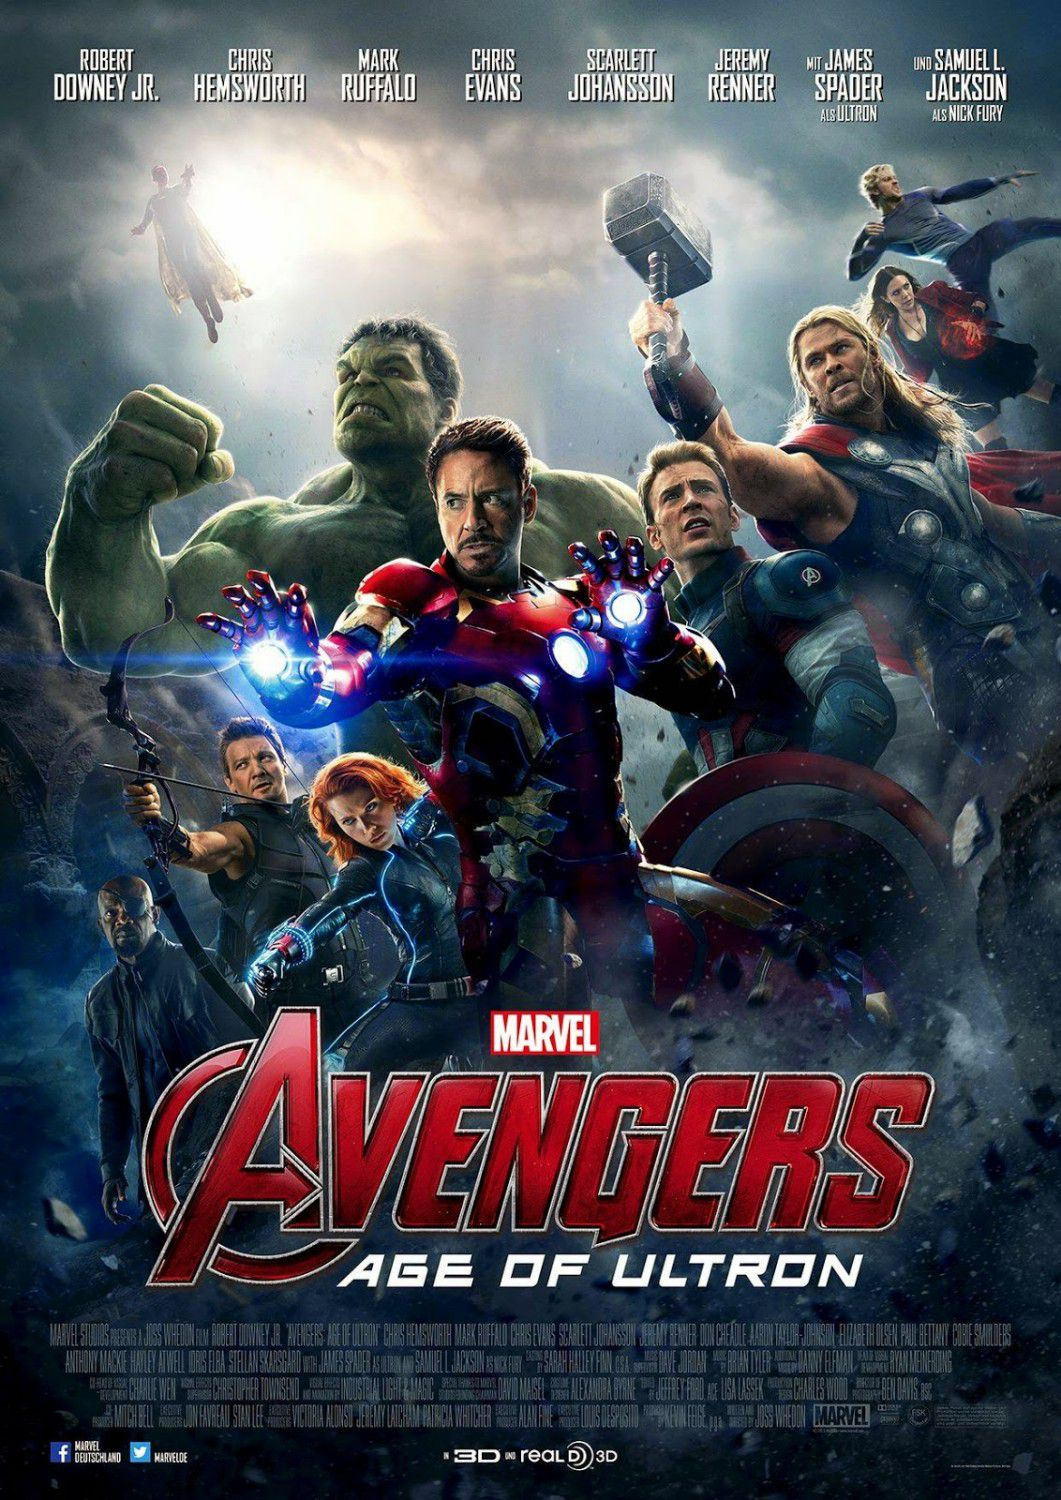 Avengers 2 - Age of Ultron . poster